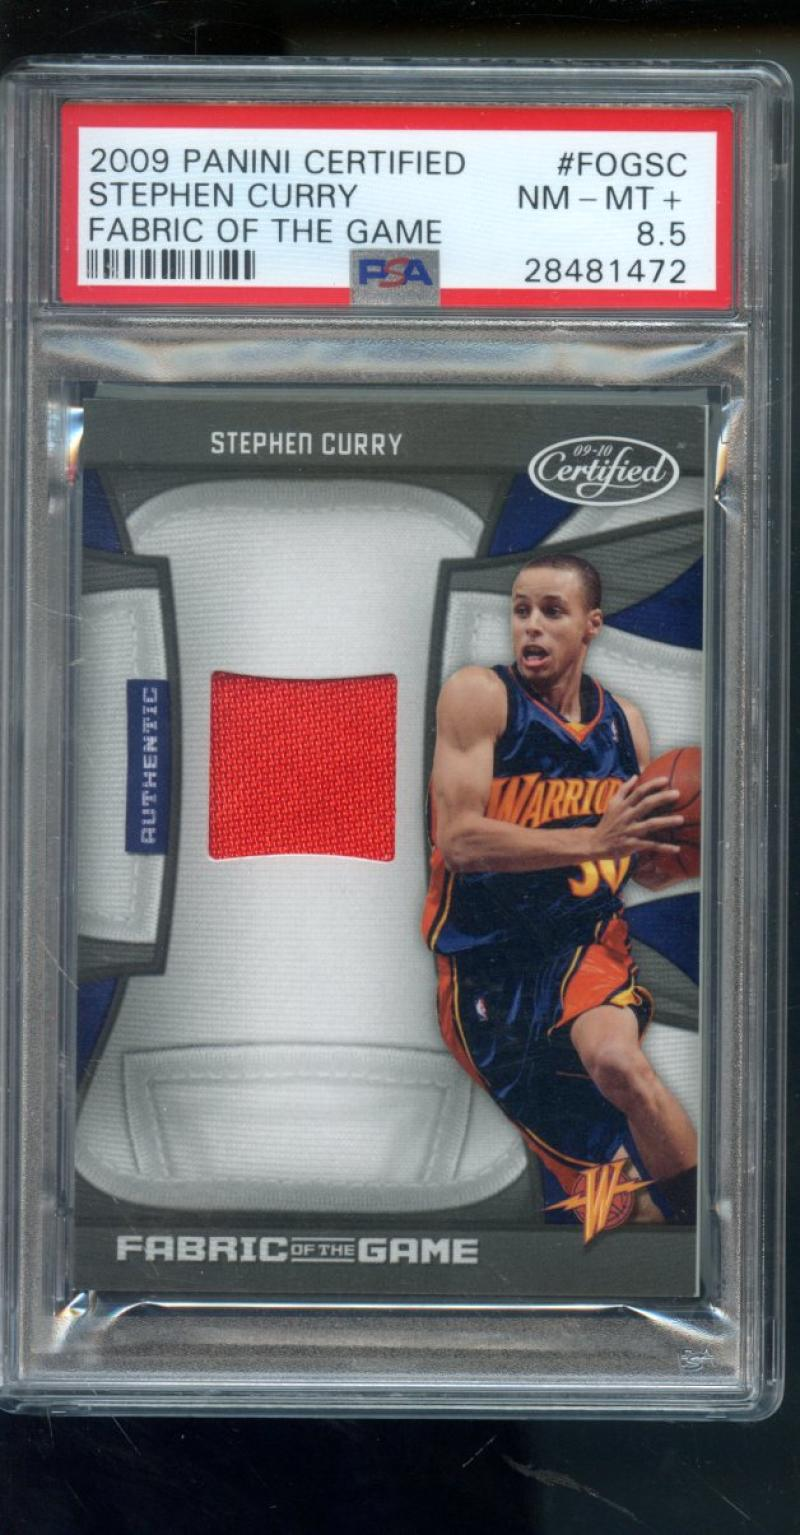 Details About 2009 Certified Fabric Of The Game Stephen Curry Rookie Rc Jersey Psa Graded Card